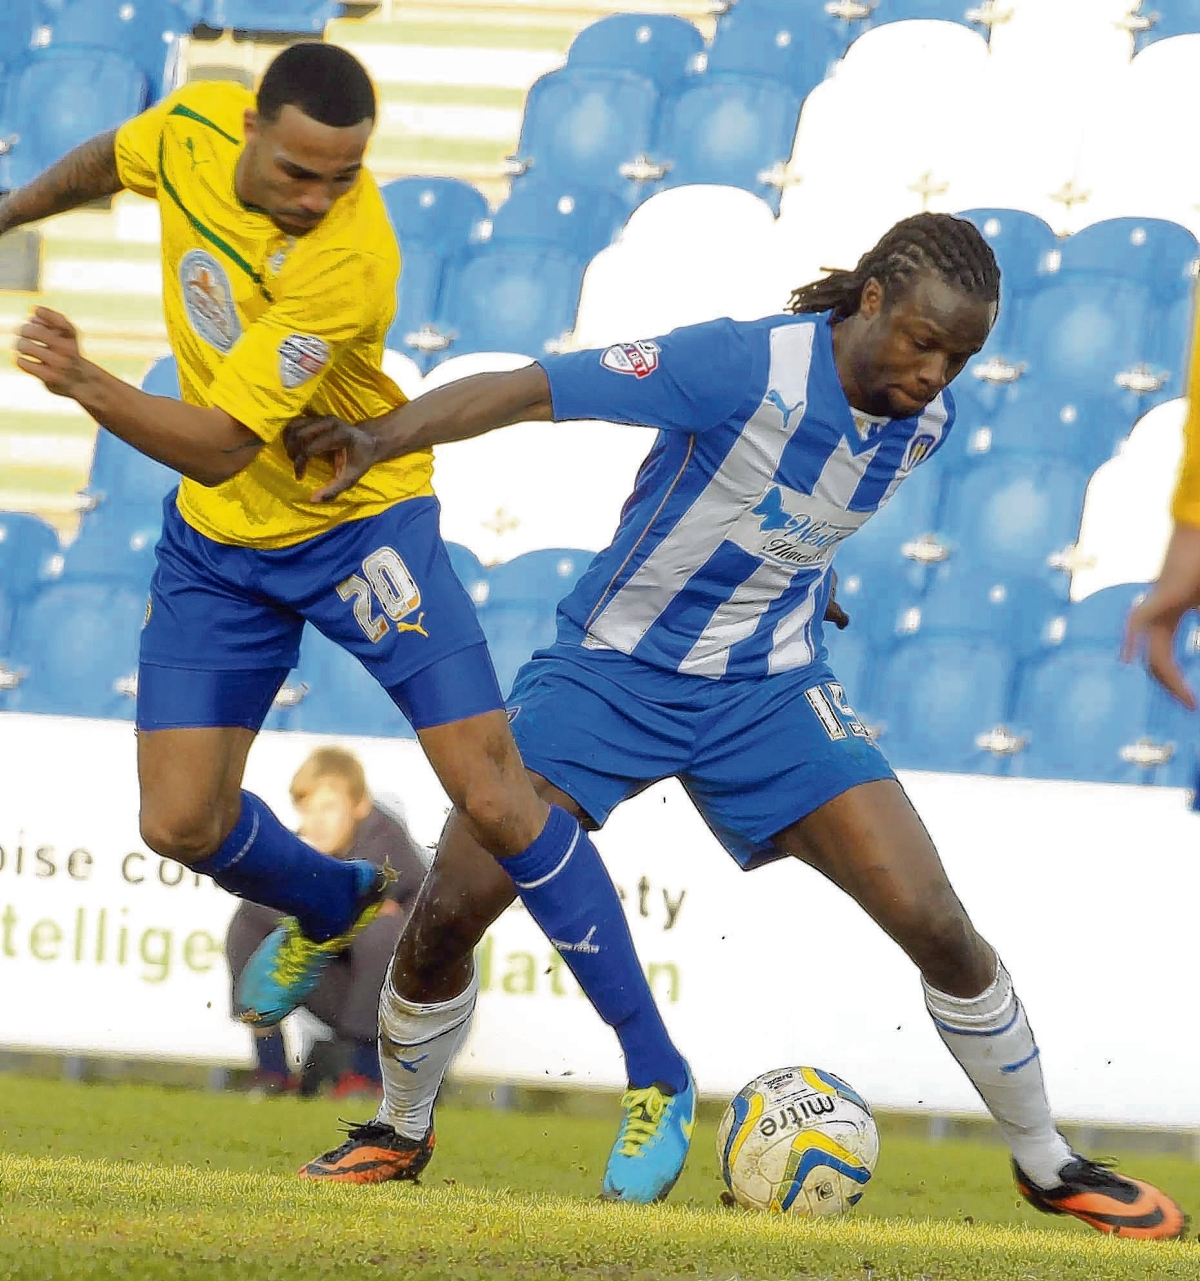 Sidelined - Marcus Bean is likely to miss Colchester United's friendly at Heybridge Swifts tonight with a knee injury.